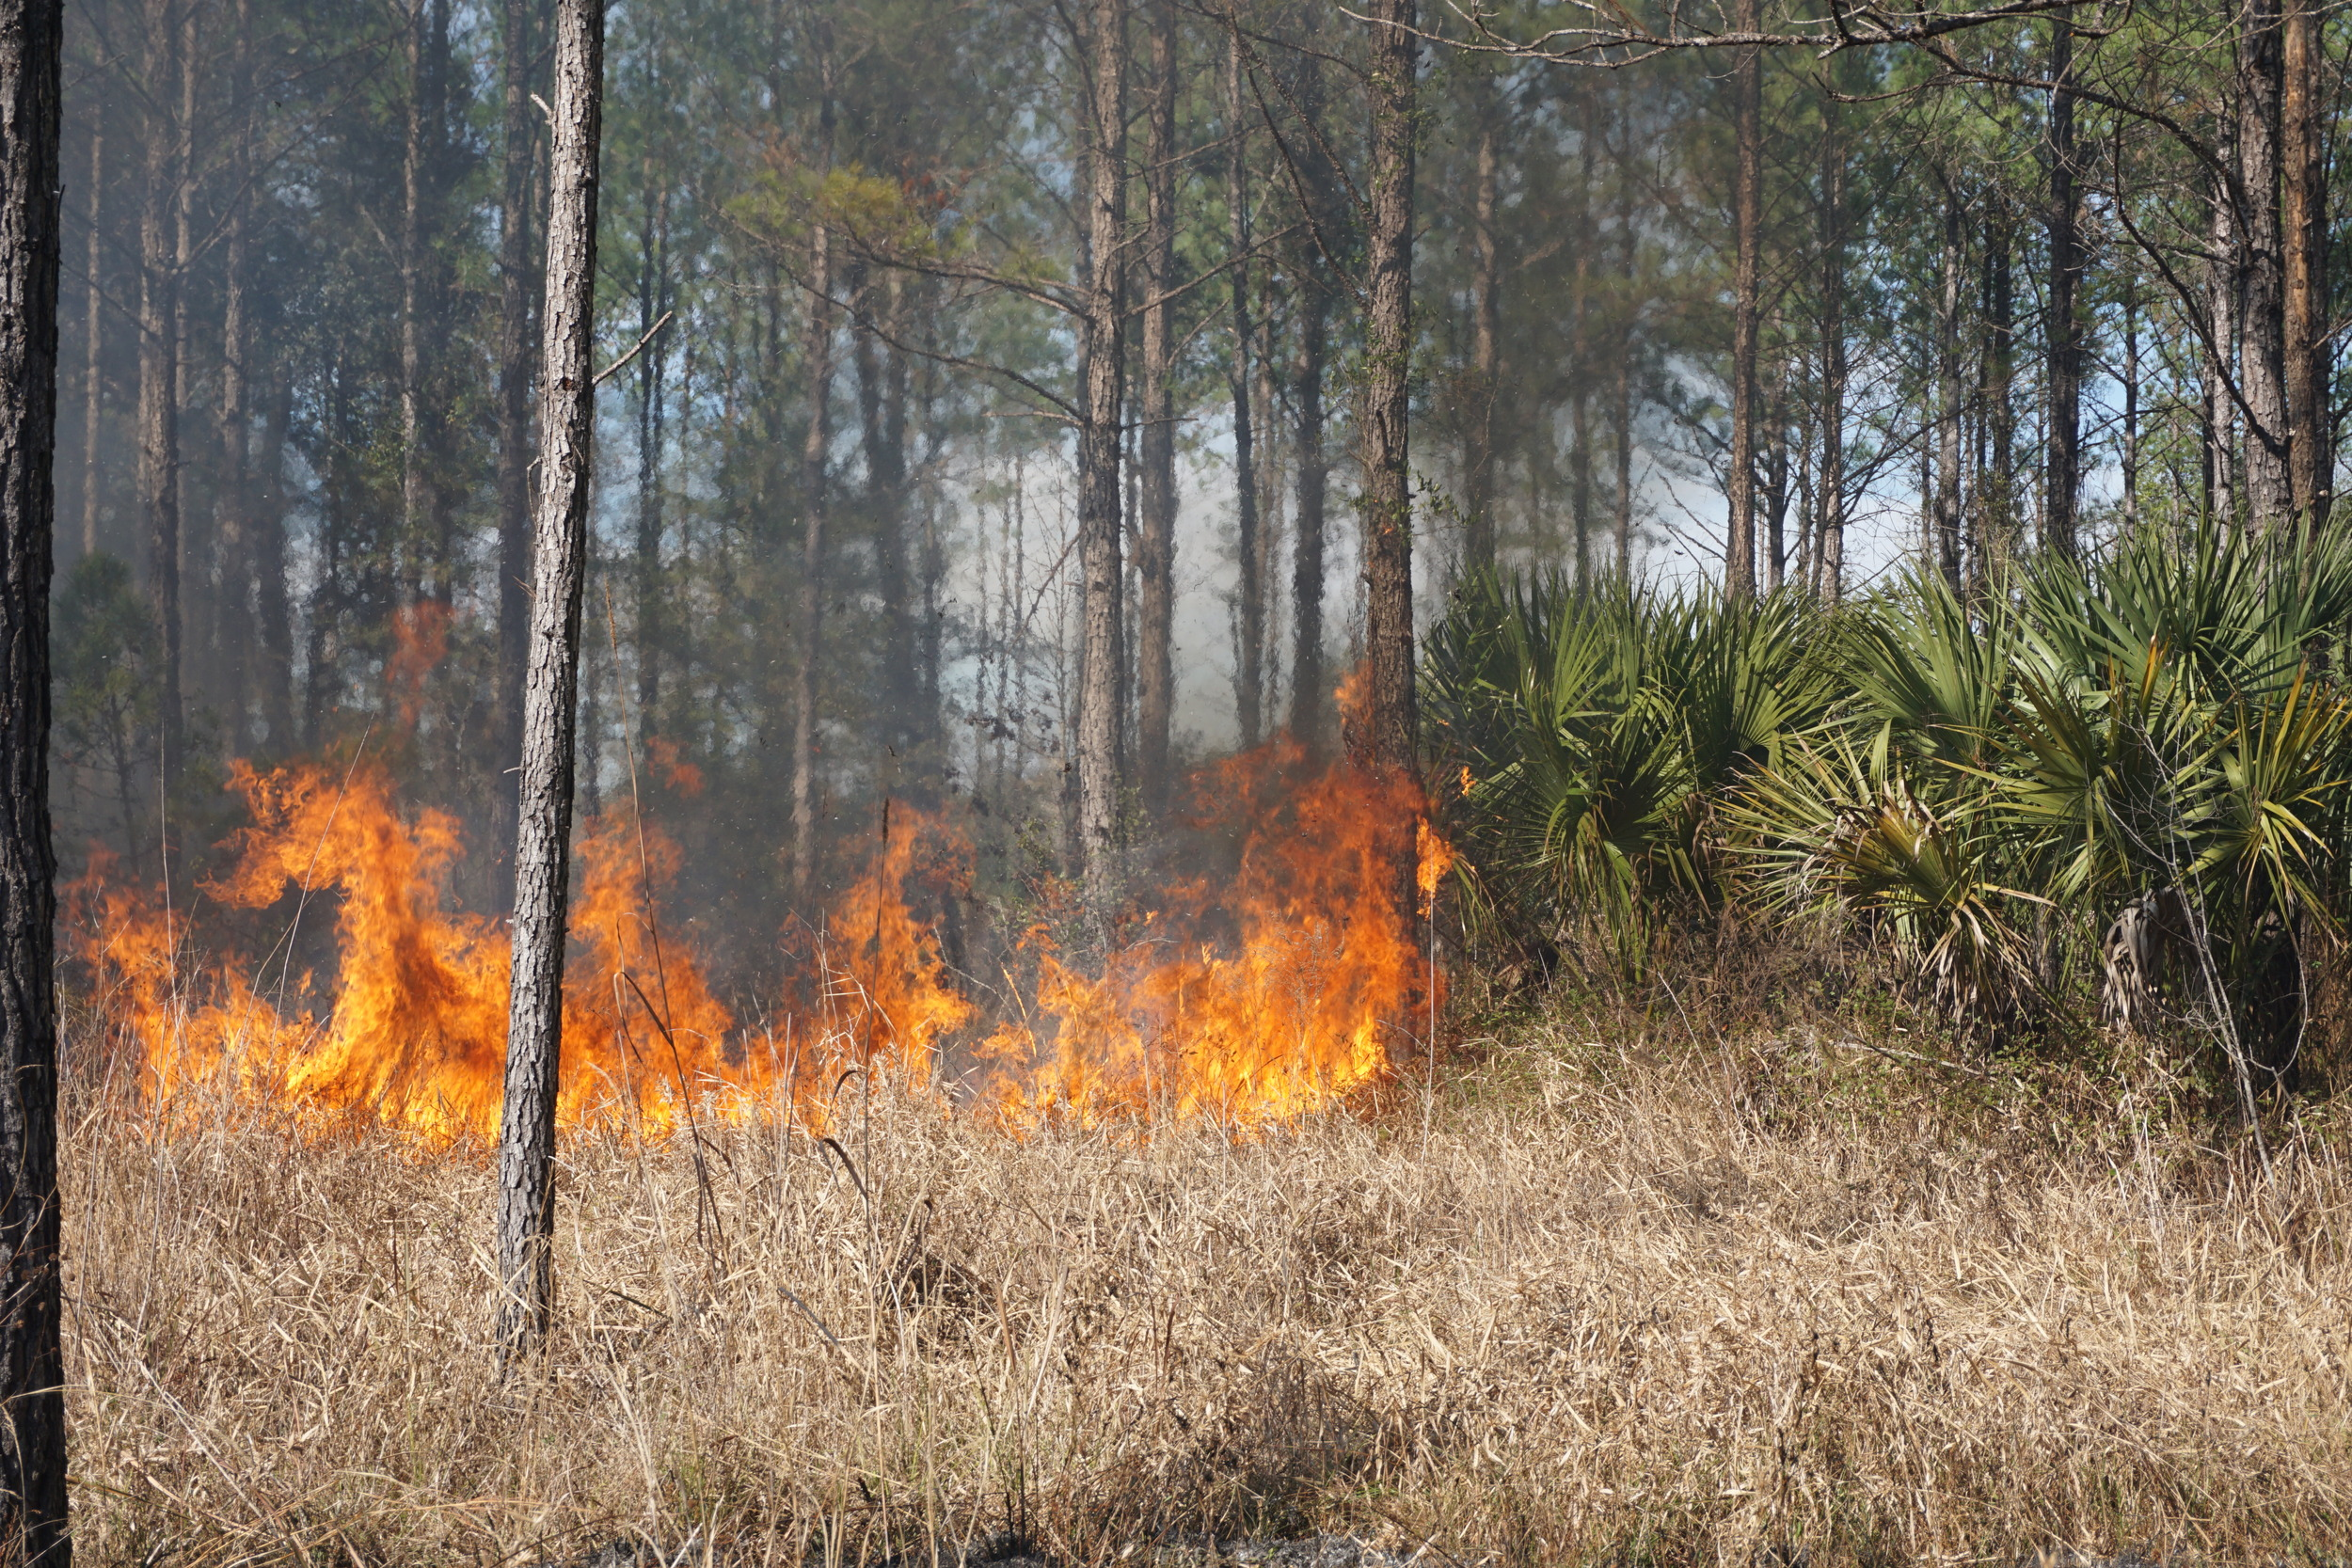 Fire takes hold during prescribed burn at the Williams'. Photo by DCW.